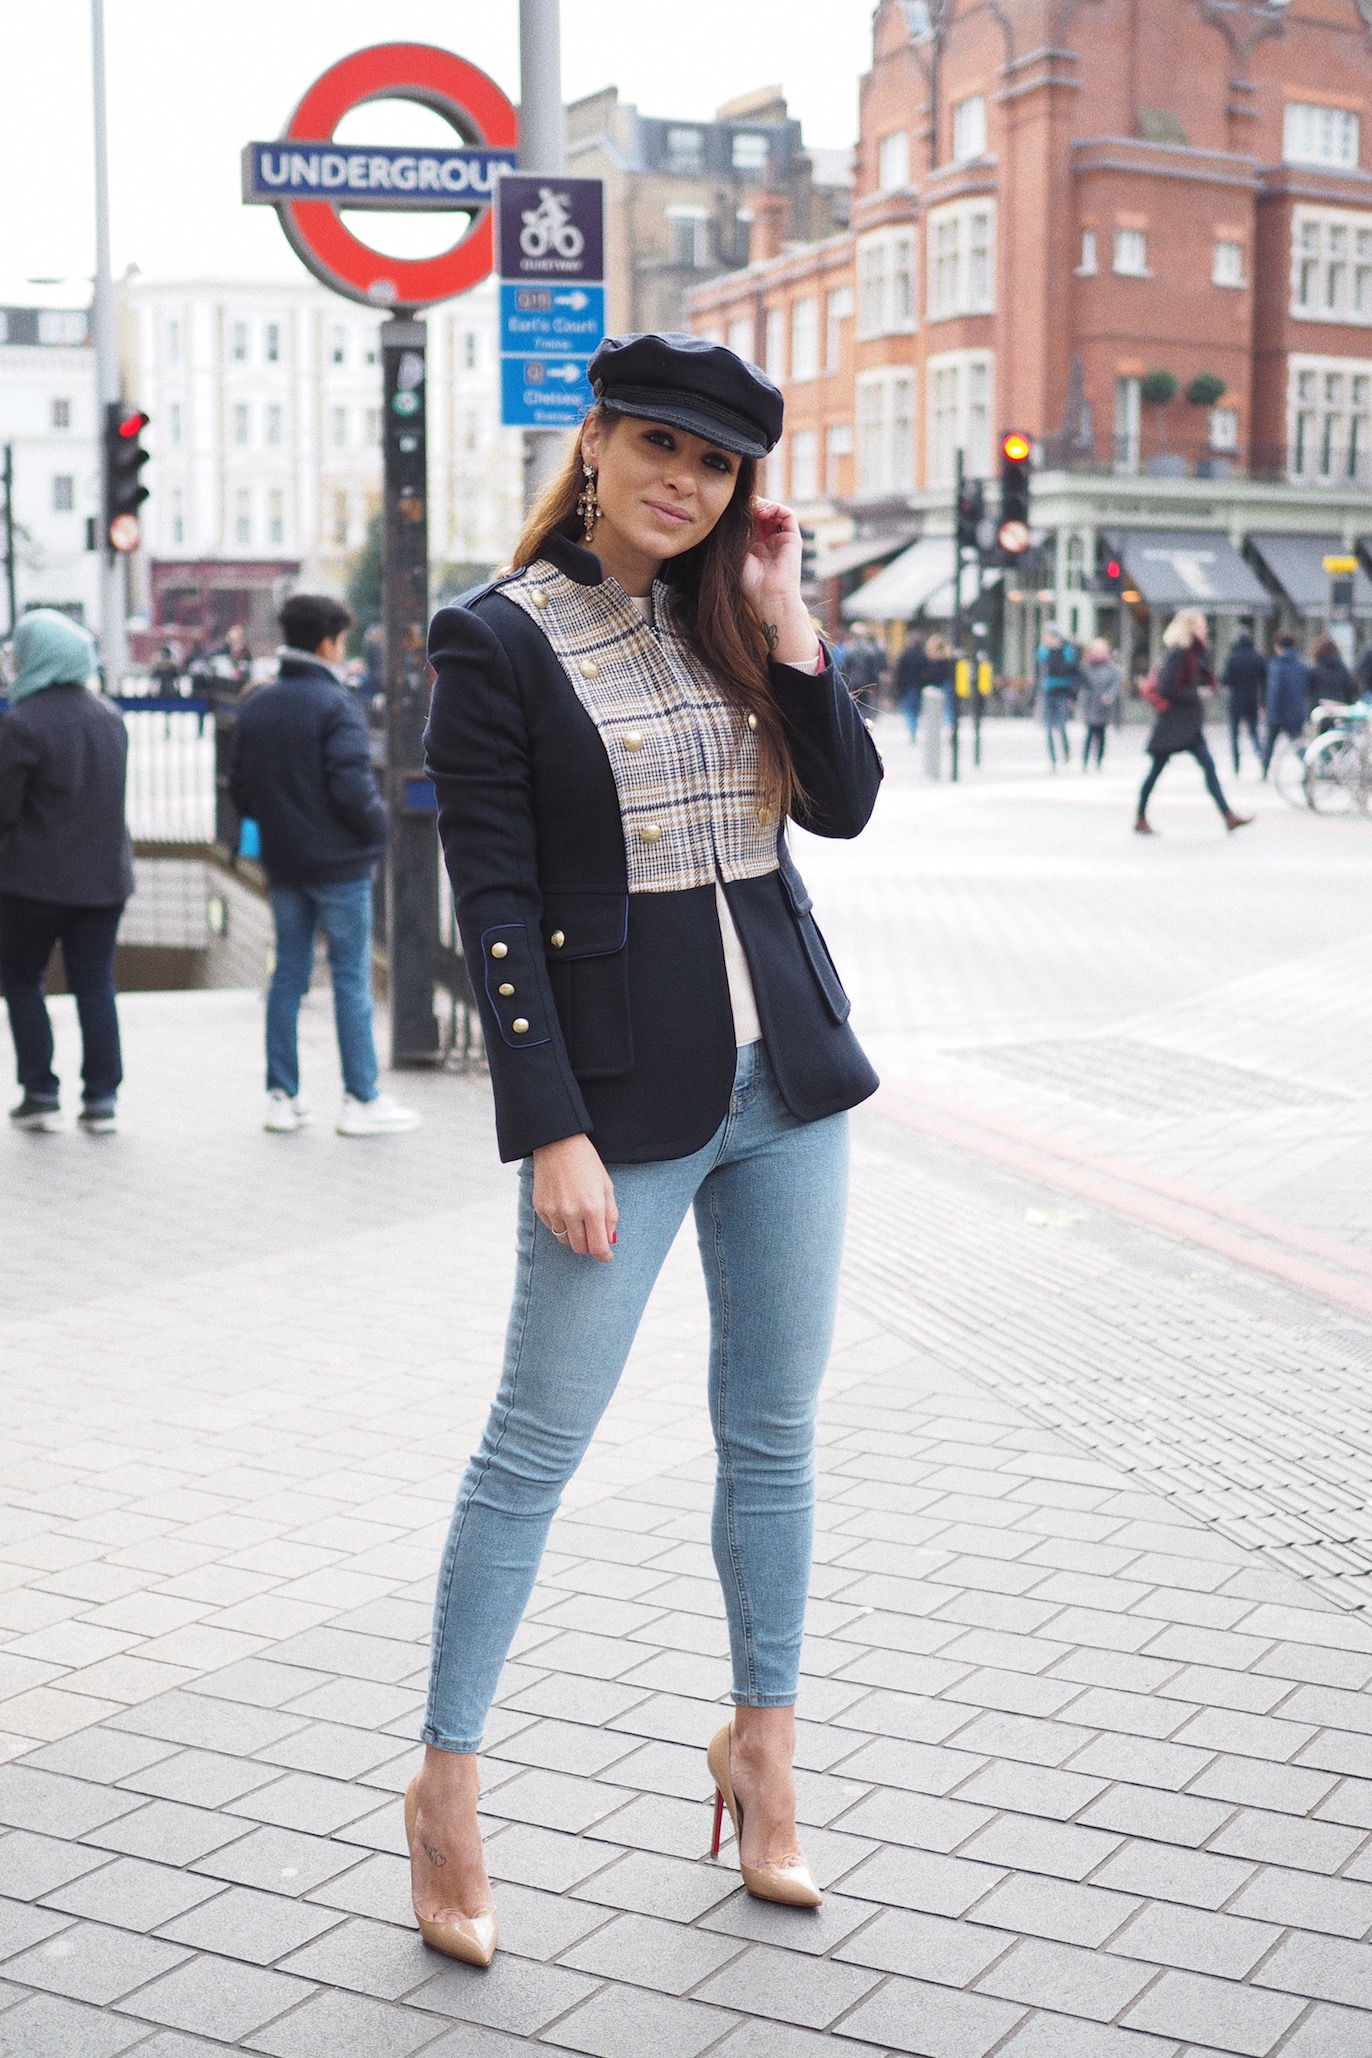 london street style christian louboutin red soles pigalle shoes